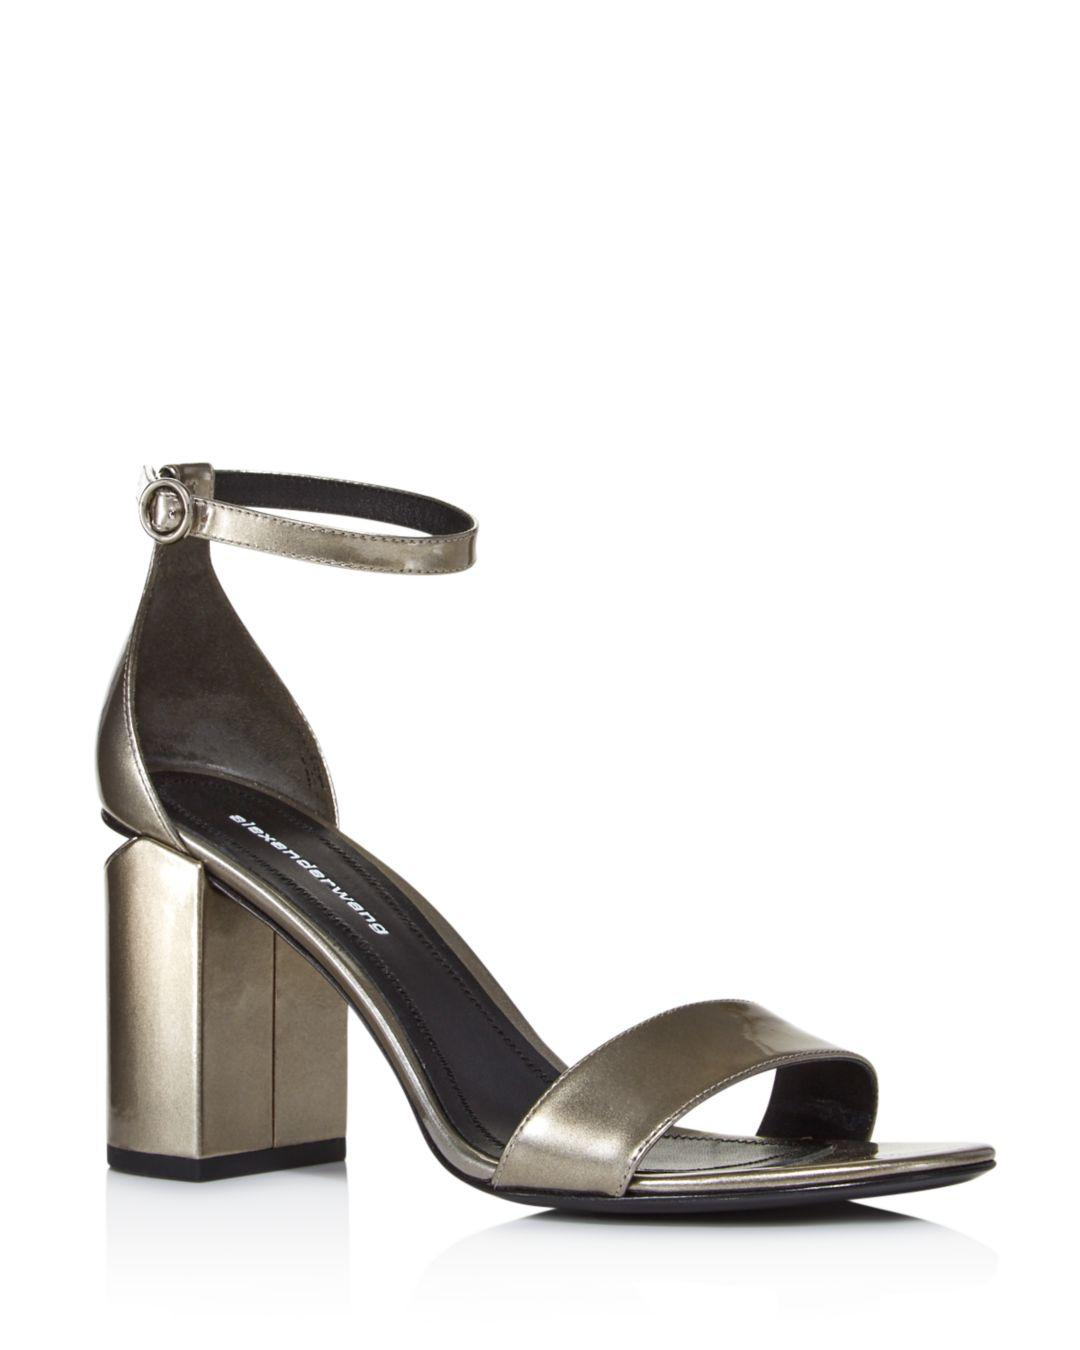 aea824696e5 Lyst - Alexander Wang Women s Abby Pewter Liquid Patent Leather ...